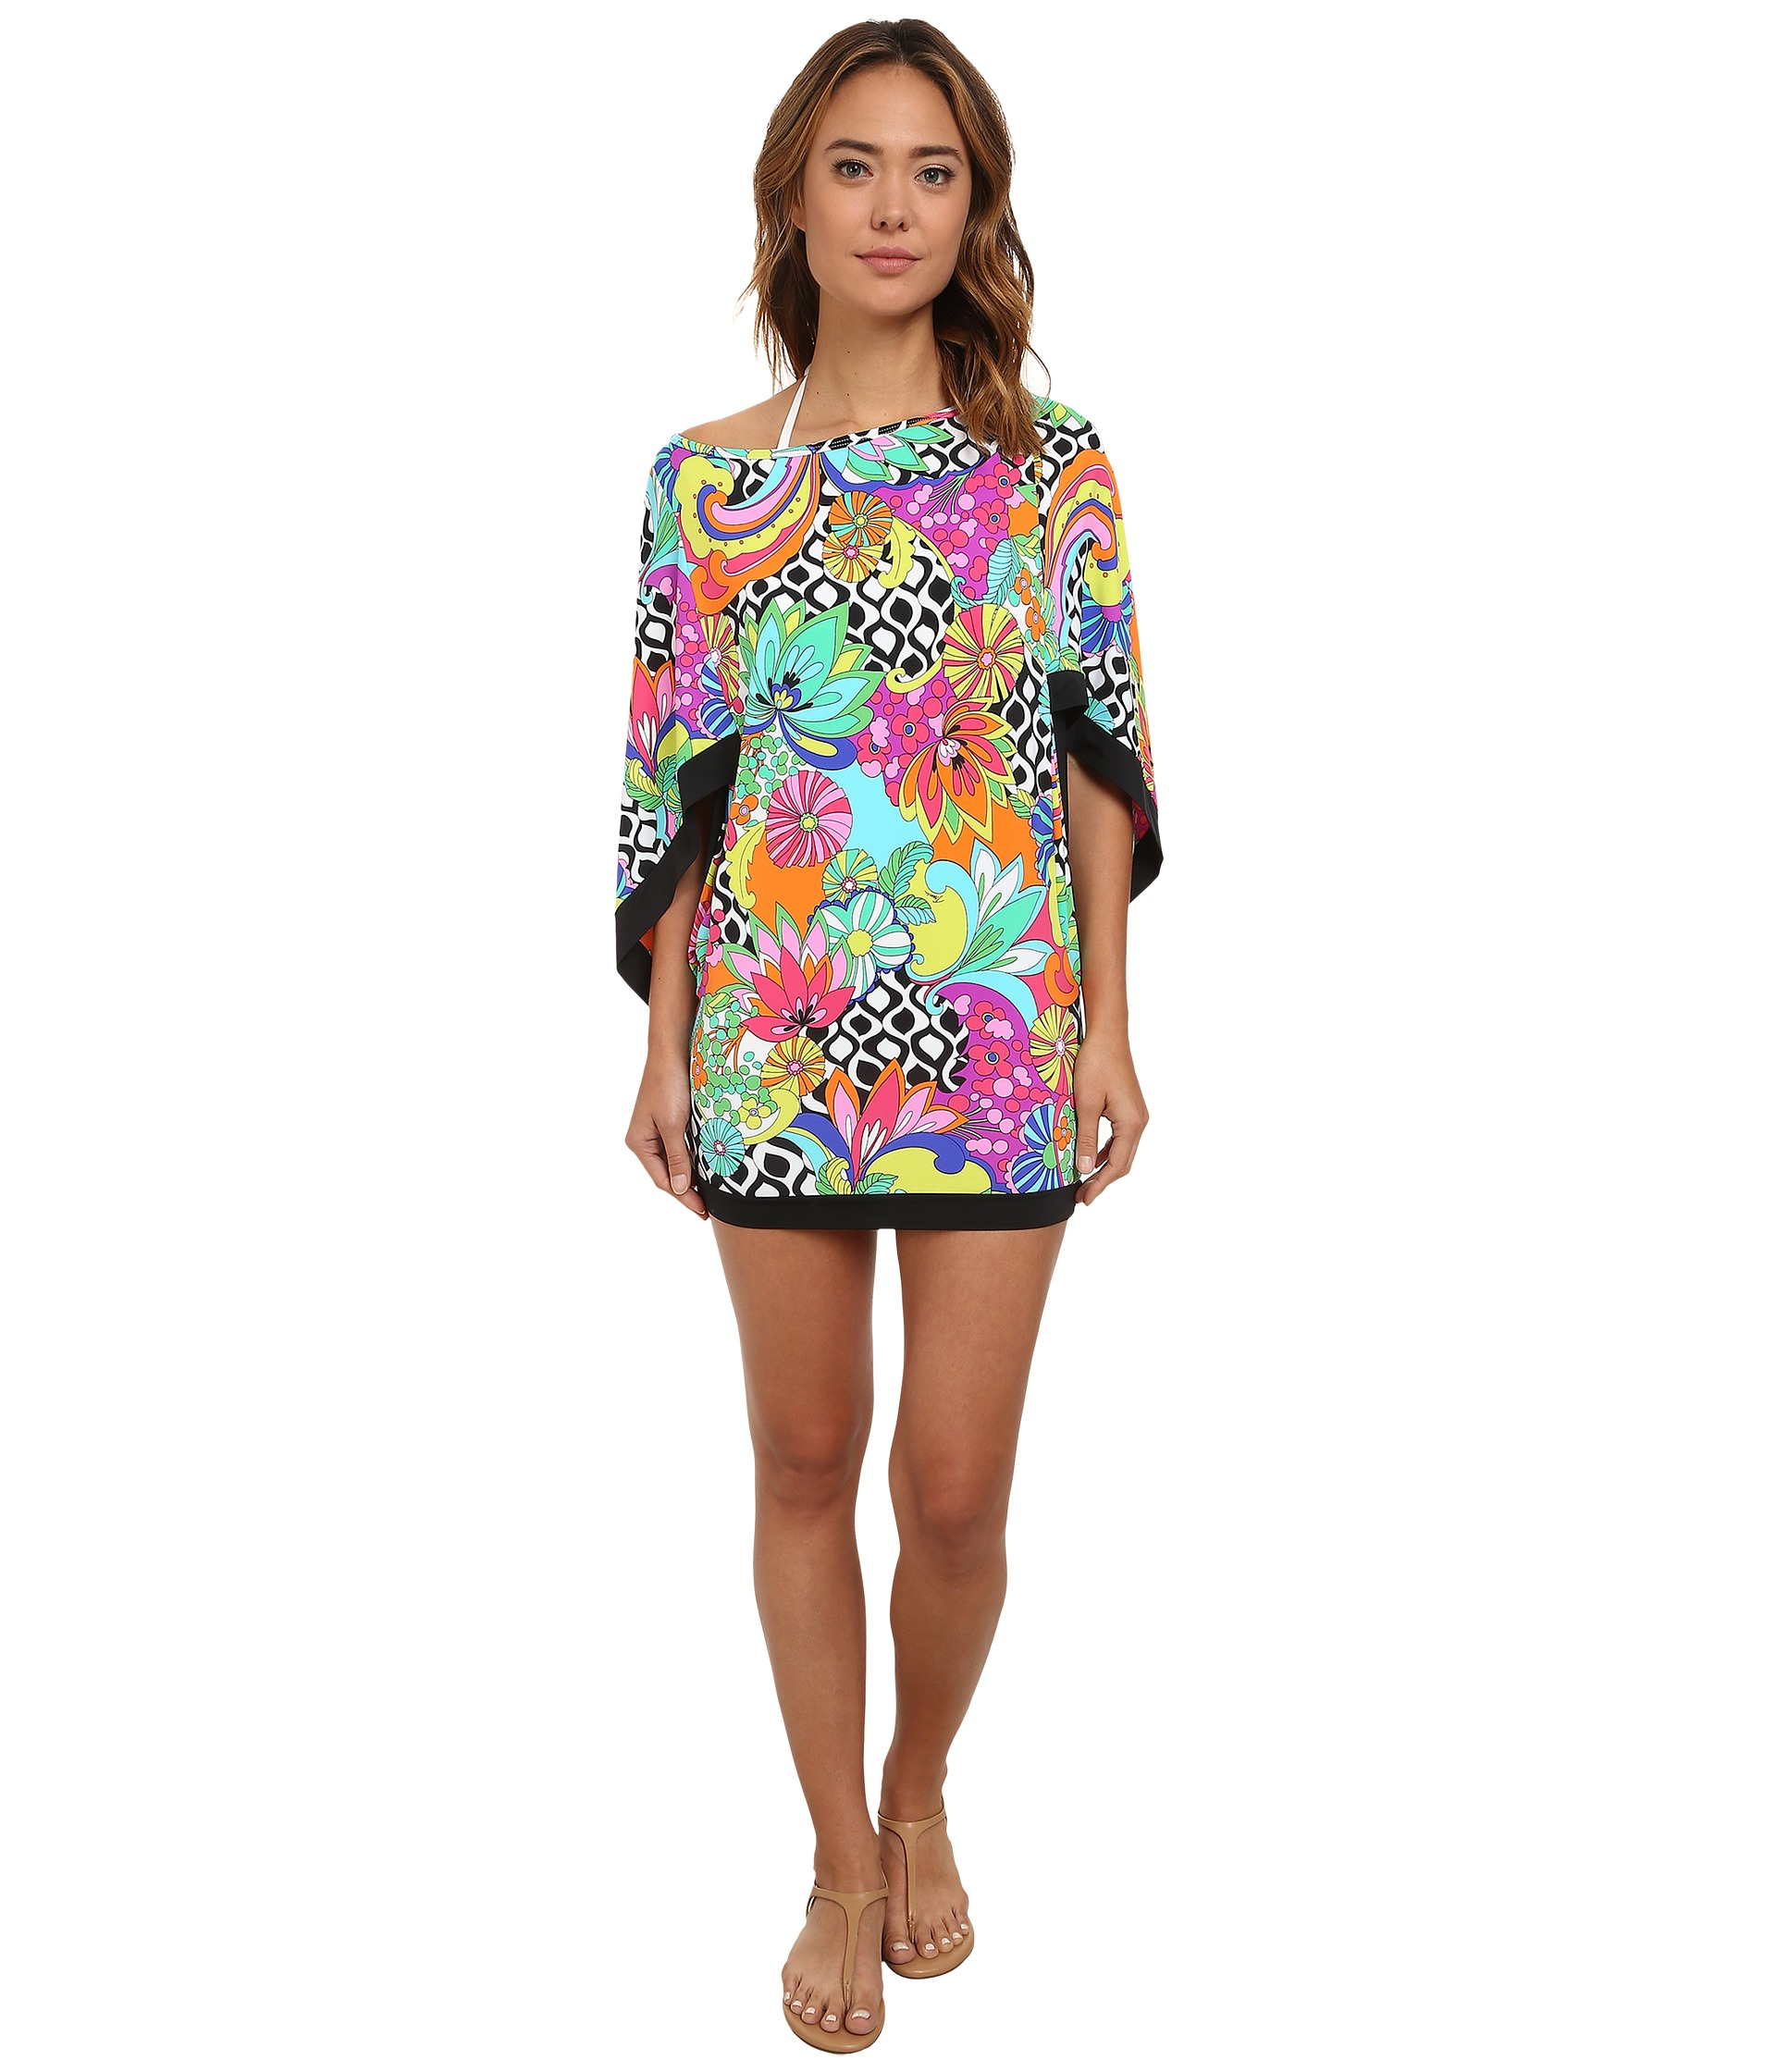 04919afad5e83 Lyst - Trina Turk Balboa Tunic Cover-up